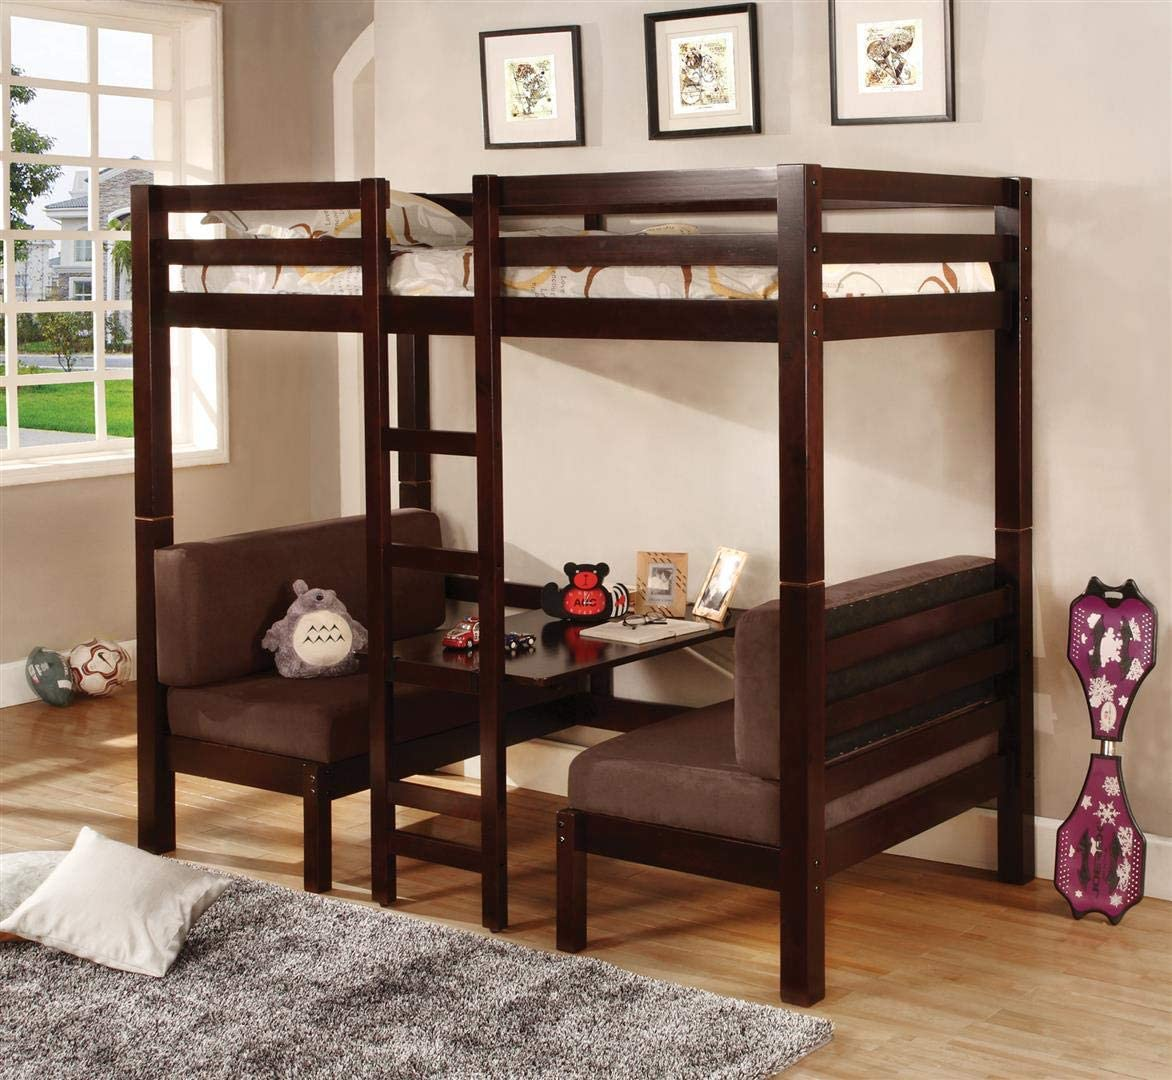 Coaster Fine Furniture 460273 Convertible Loft Bed White Finish Twin Beds Frames Bases Beds Urbytus Com